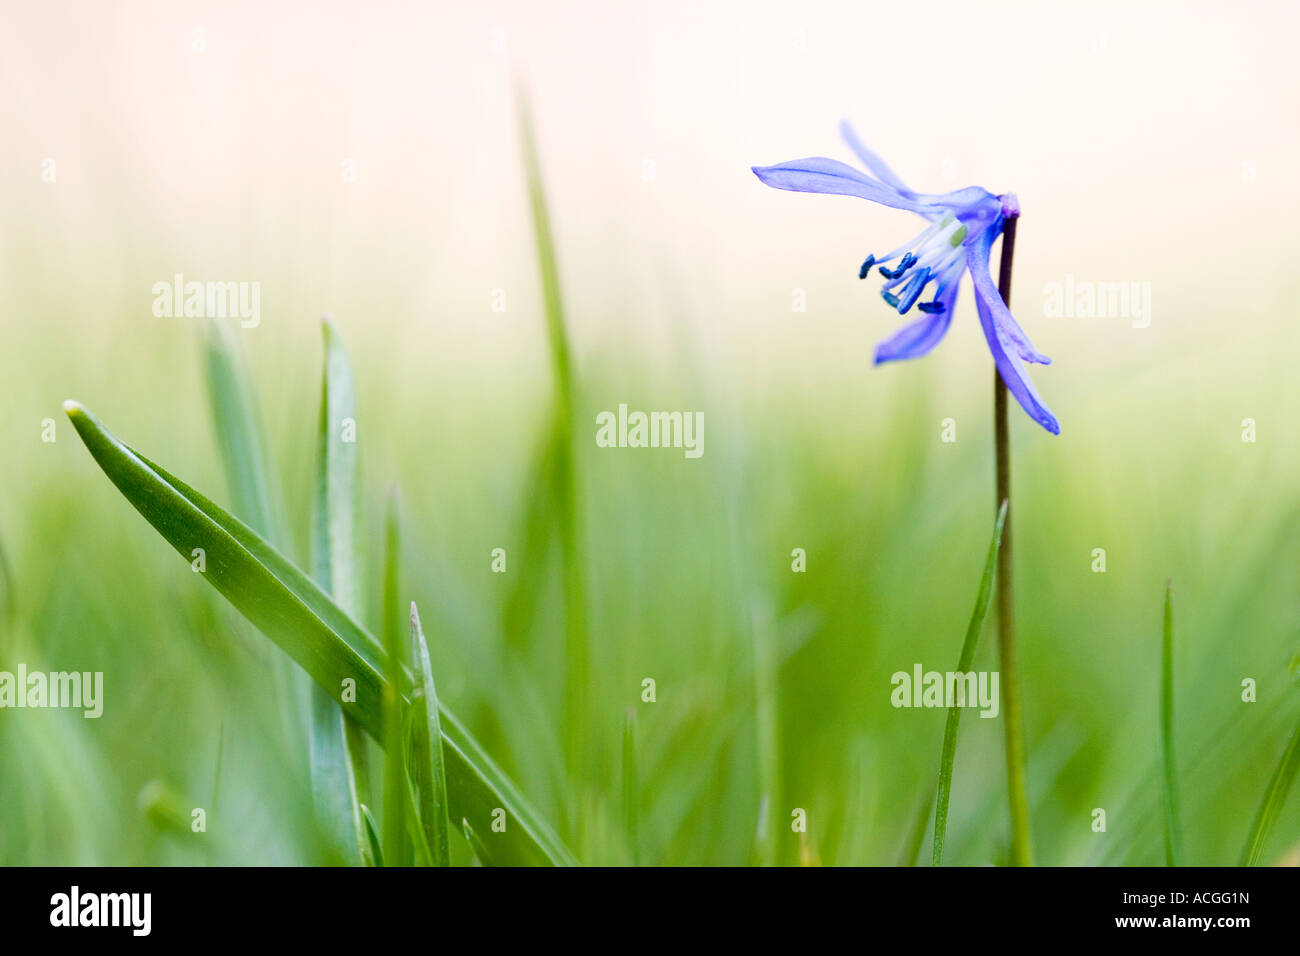 Scilla siberica. Siberian squill flower in amongst grass against a hazy green background - Stock Image